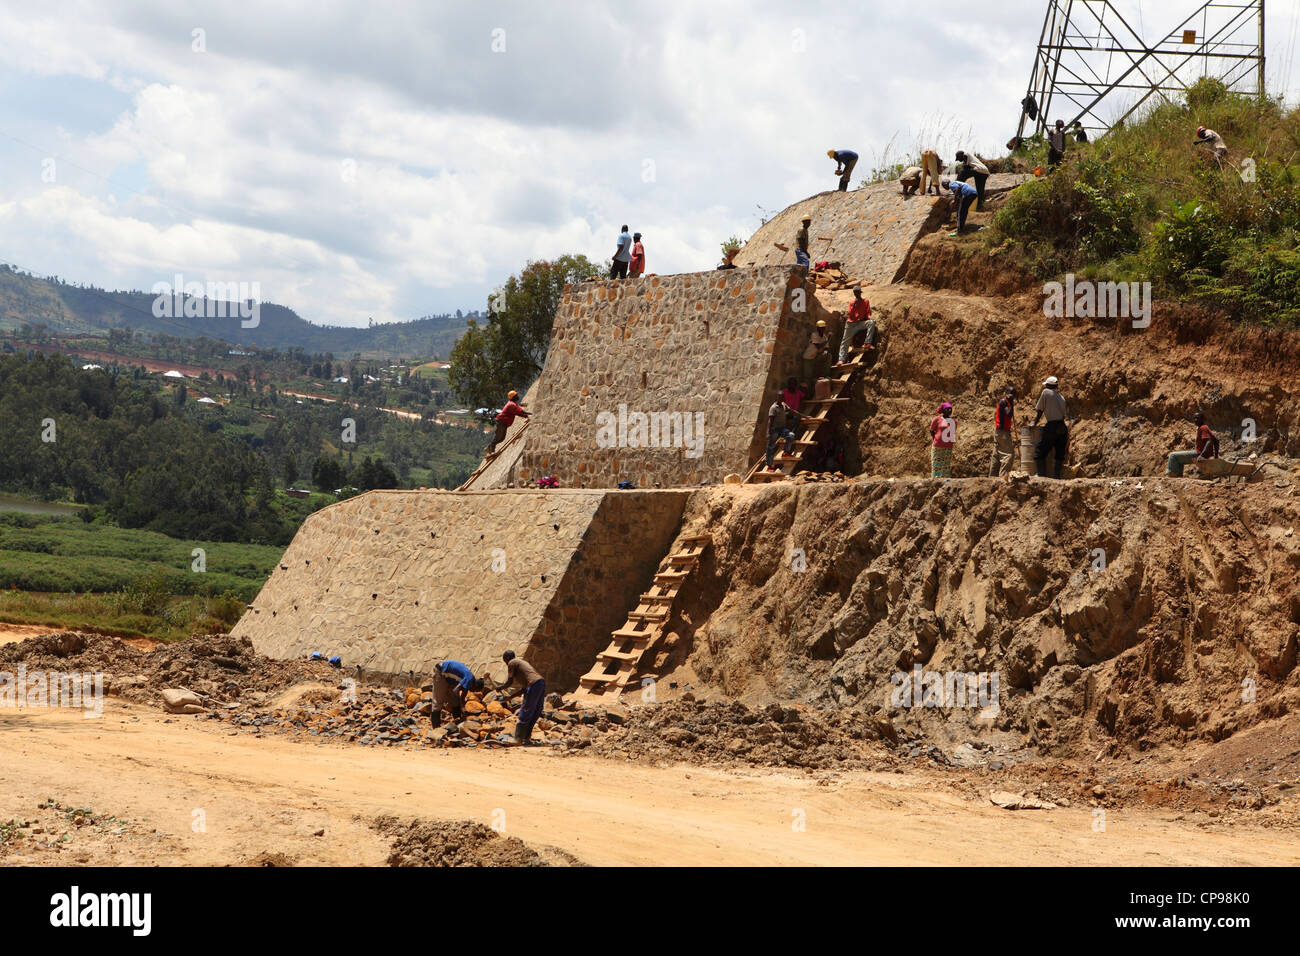 Men work constructing a highway in the Western Province of Rwanda. Stock Photo